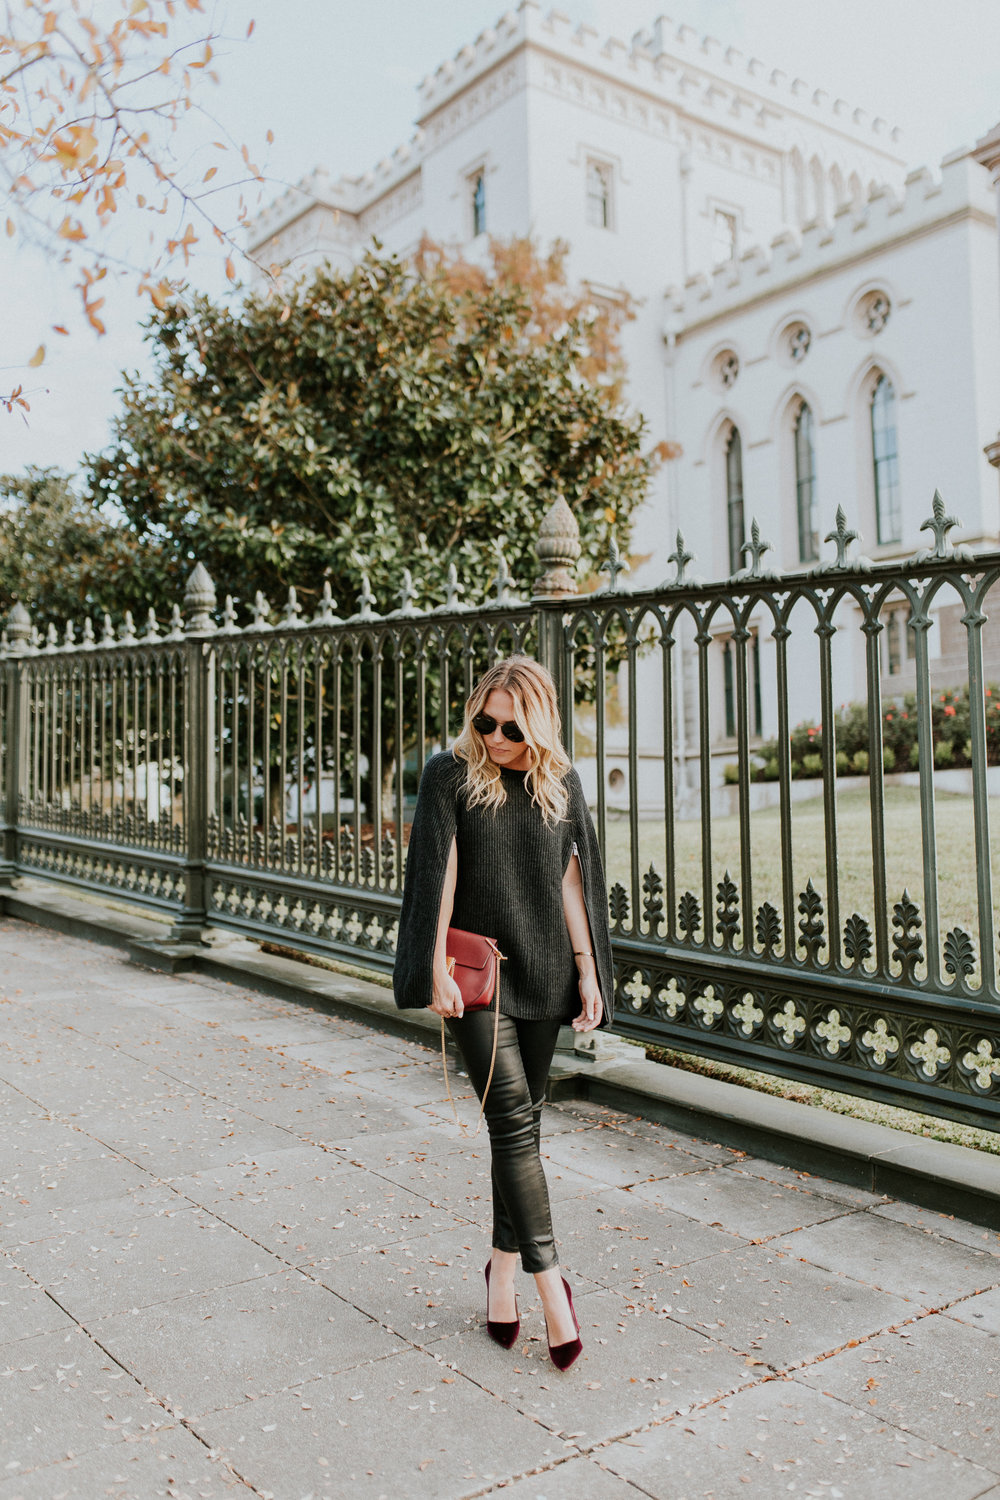 Blogger Gracefully Taylored in Autumn Cashmere Cape and Dee Keller Shoes.jpg